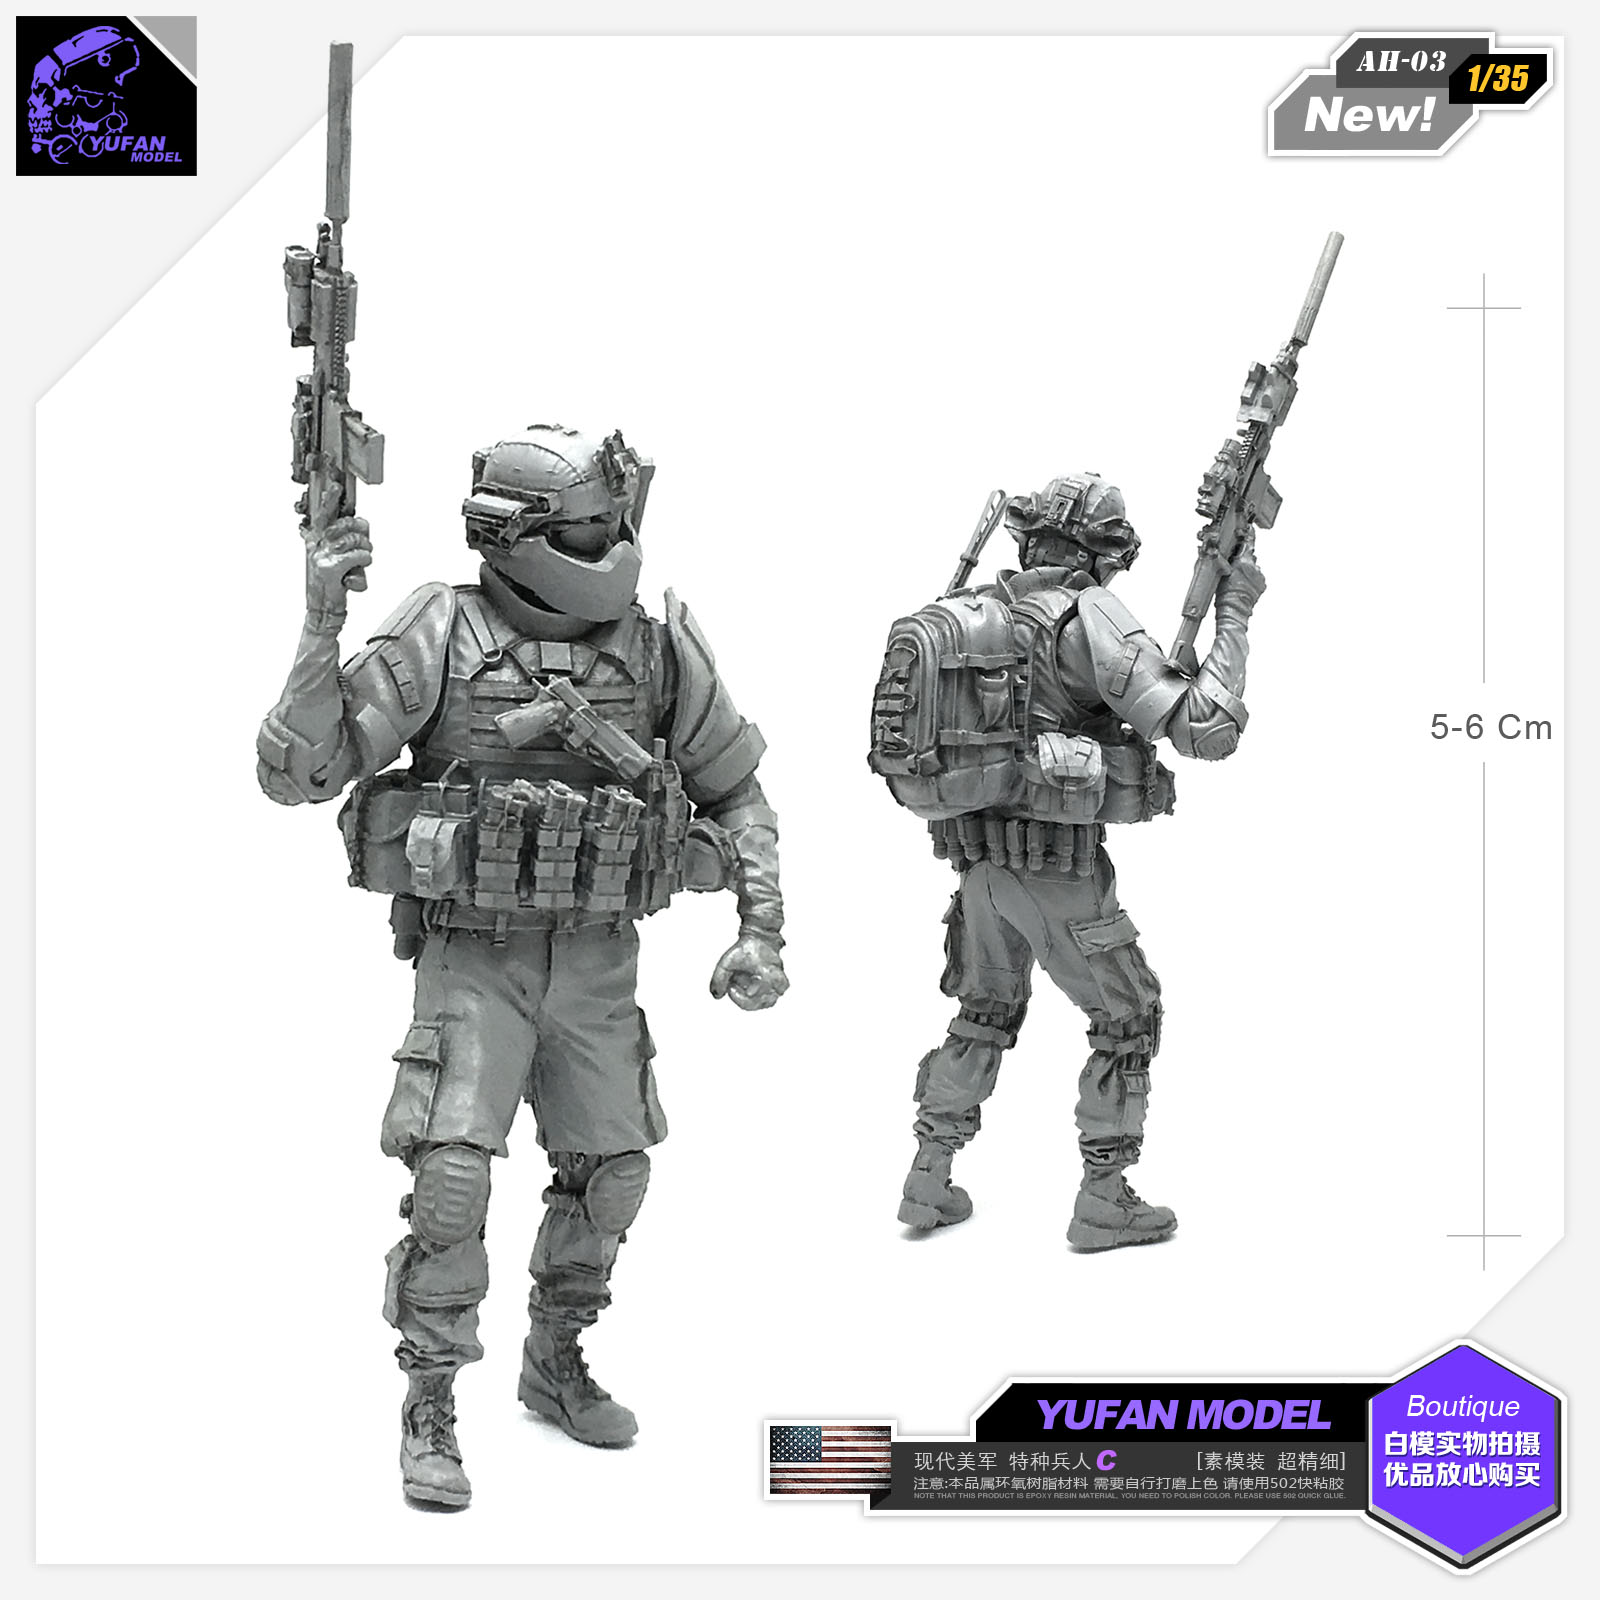 Yufan Model 1/35 Figure Model Kits Modern American Special Forces C Resin Soldier Model Unmounted Ah-03Yufan Model 1/35 Figure Model Kits Modern American Special Forces C Resin Soldier Model Unmounted Ah-03